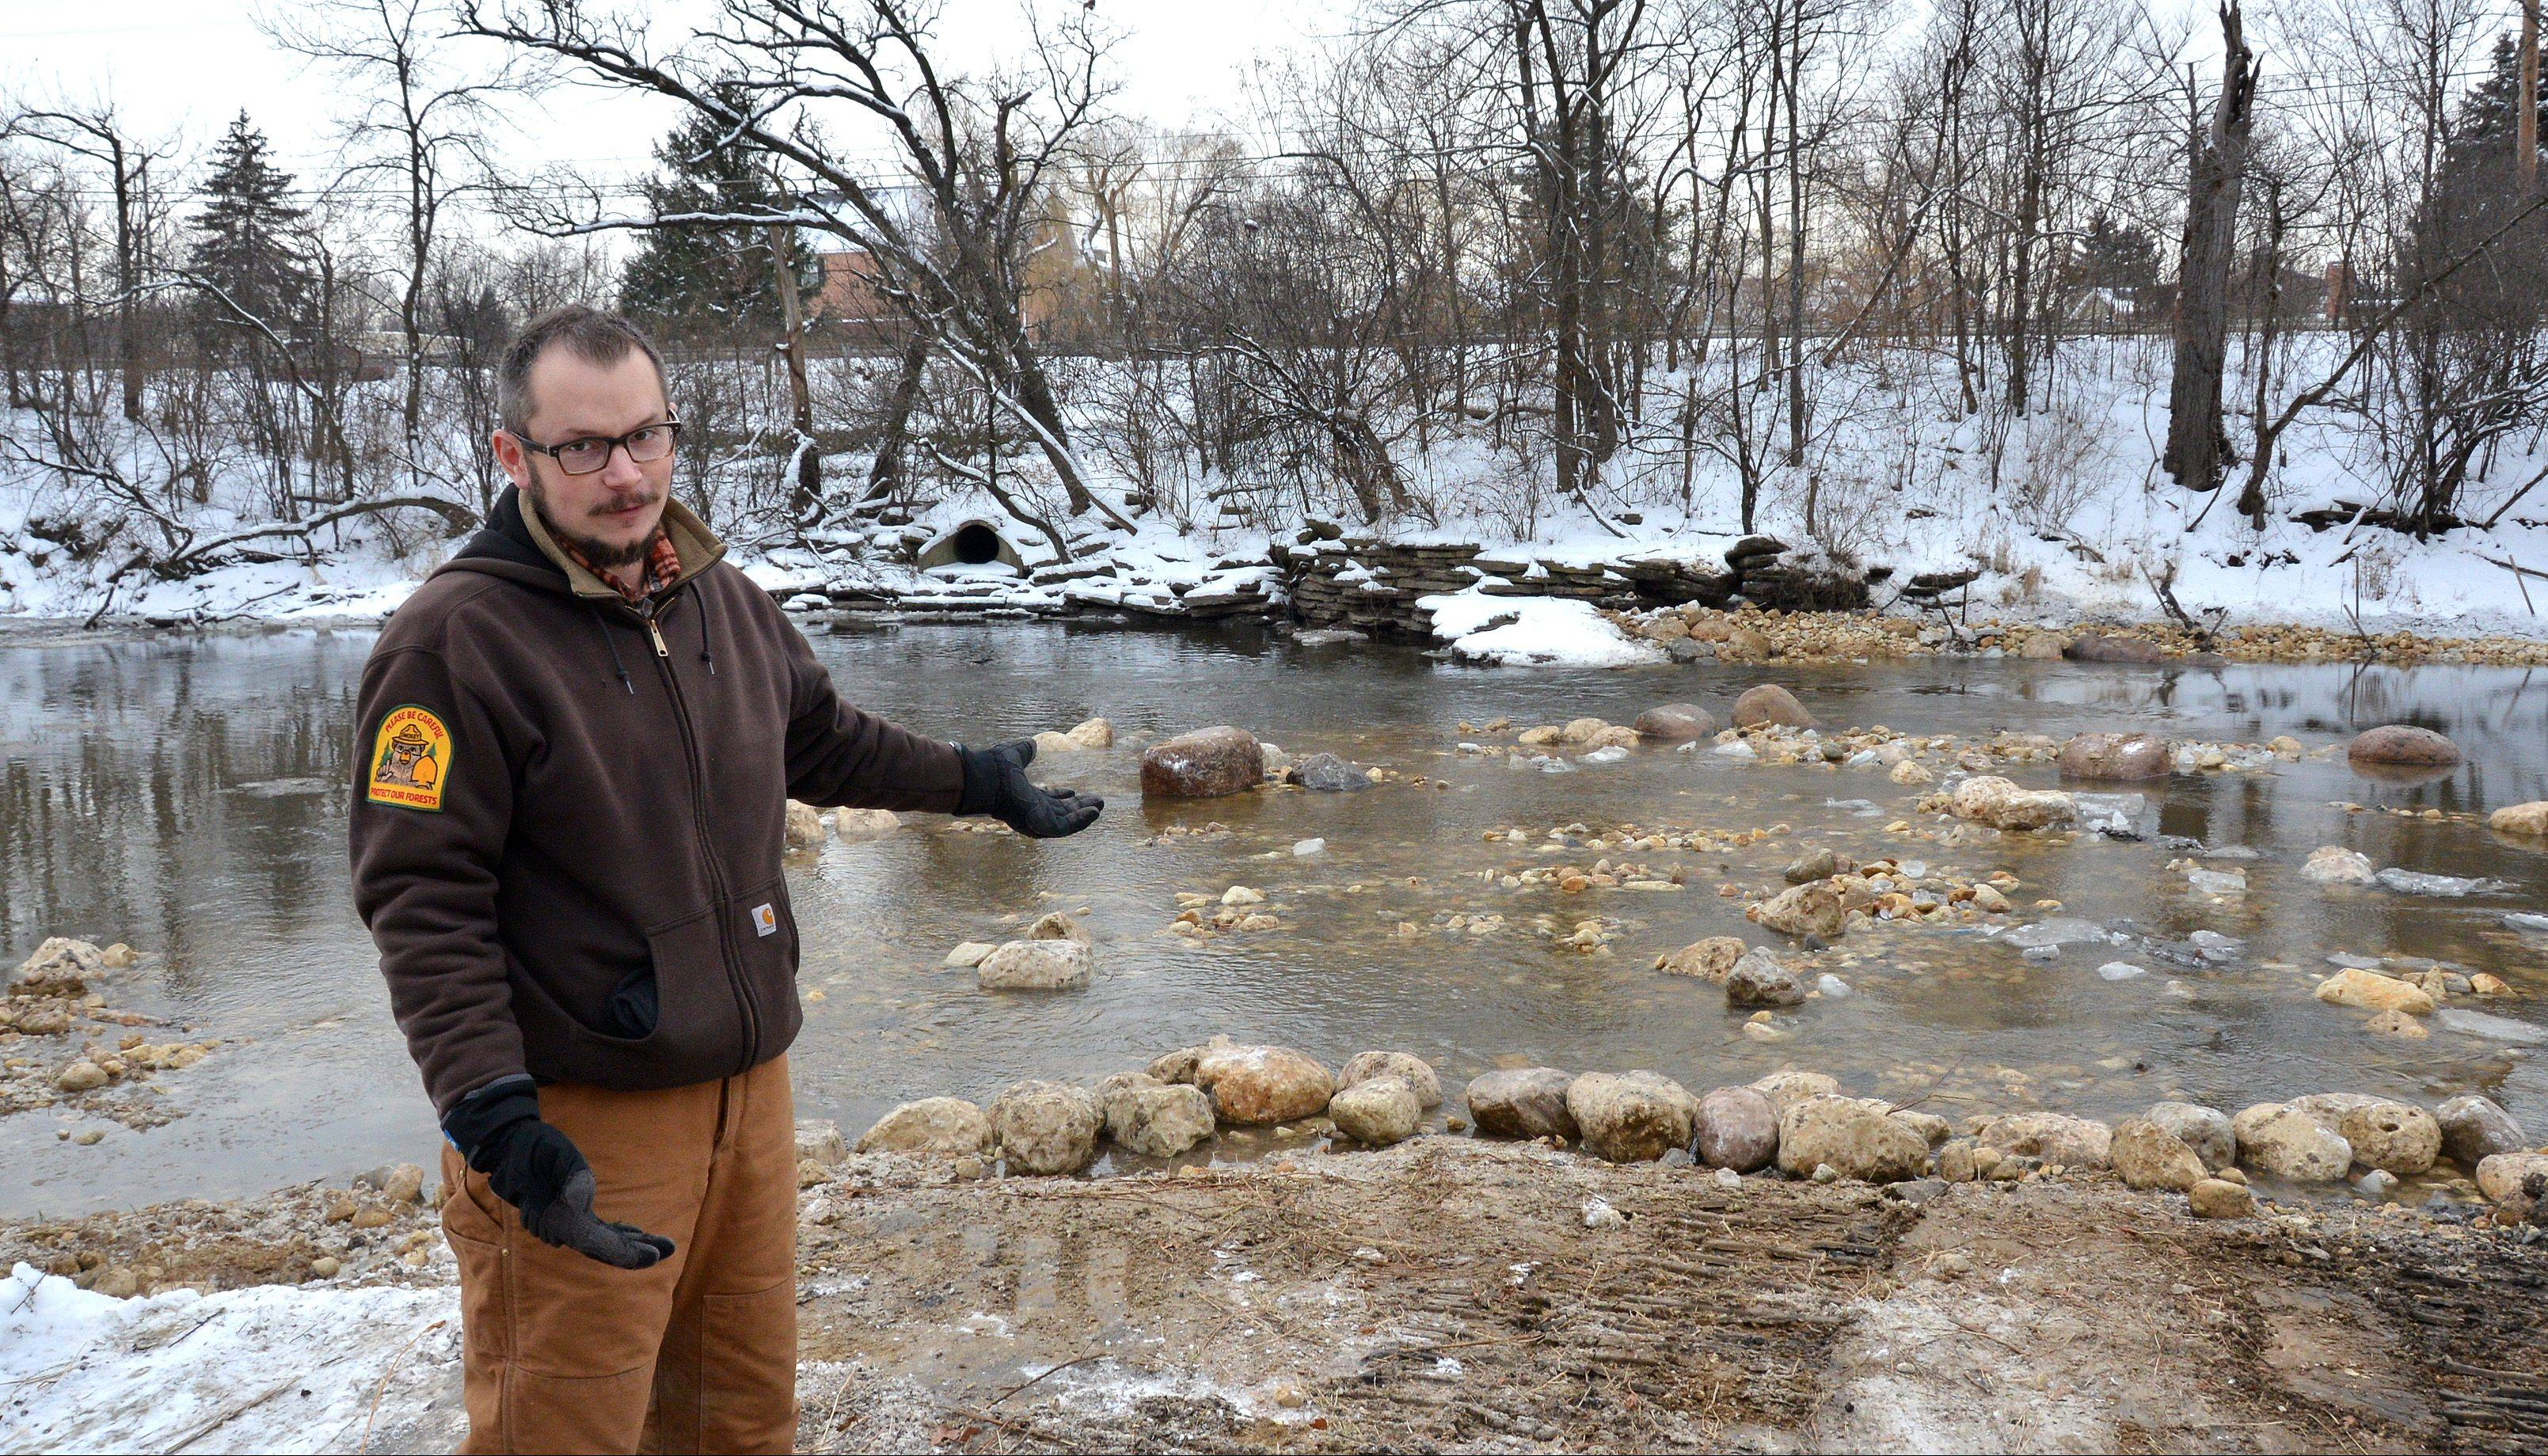 Nick Fuller, a natural resource project coordinator with the DuPage County Forest Preserve District, describes how rocks have been put into the West Branch of the DuPage River at McDowell Grove Forest Preserve near Naperville.